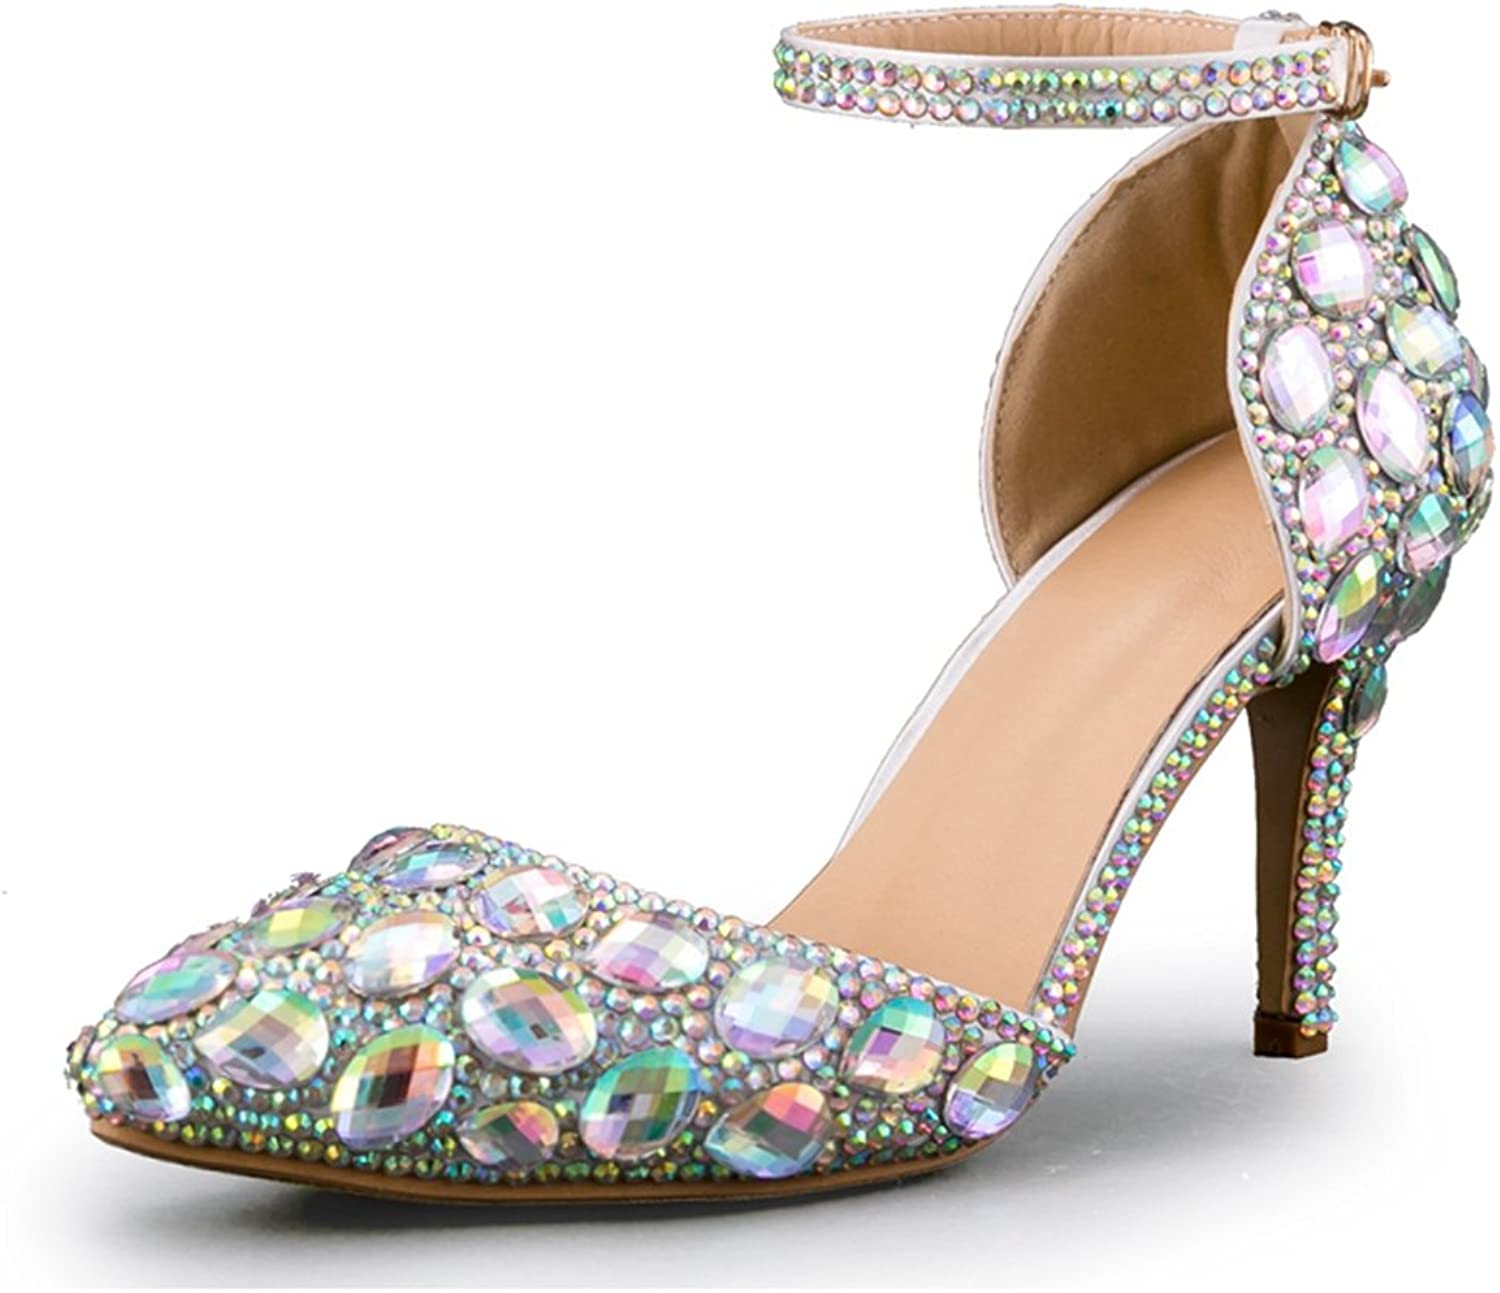 Minishion Women's Sparkling Ankle Strap Bridal Wedding shoes with Crystals Rhinestons